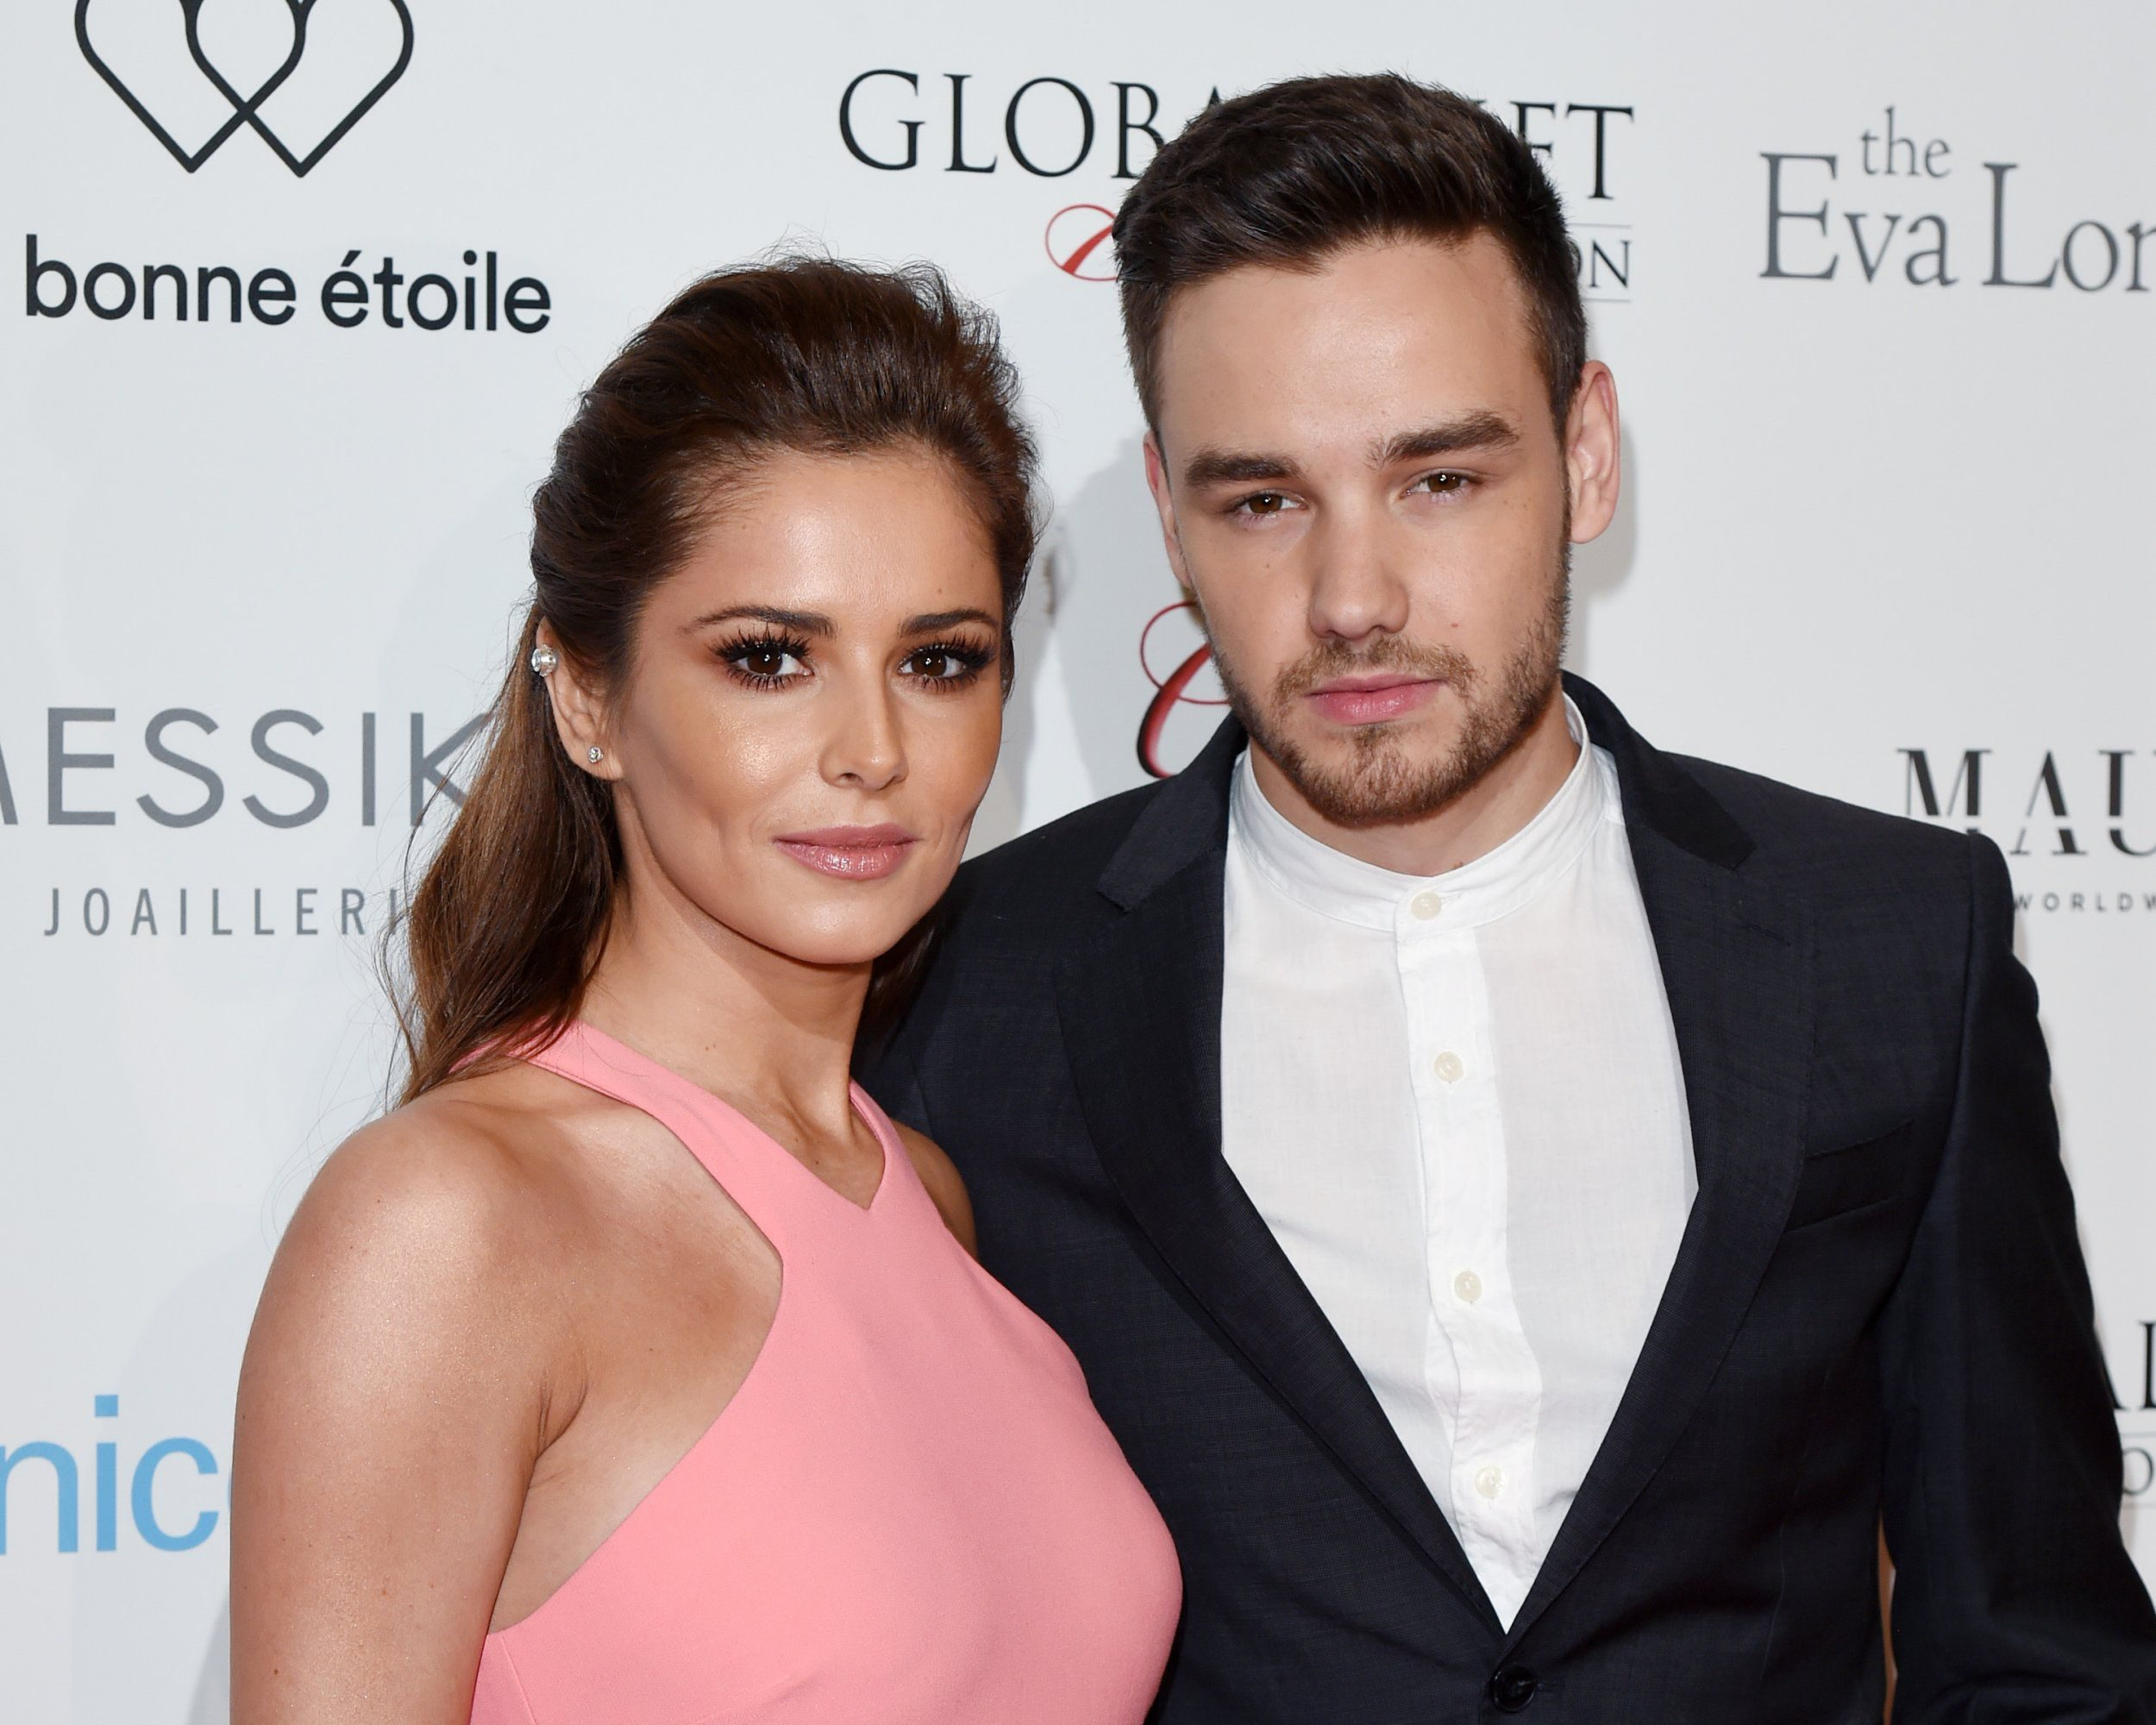 Are new parents Liam Payne and Cheryl planning an 'intimate quickie wedding'?